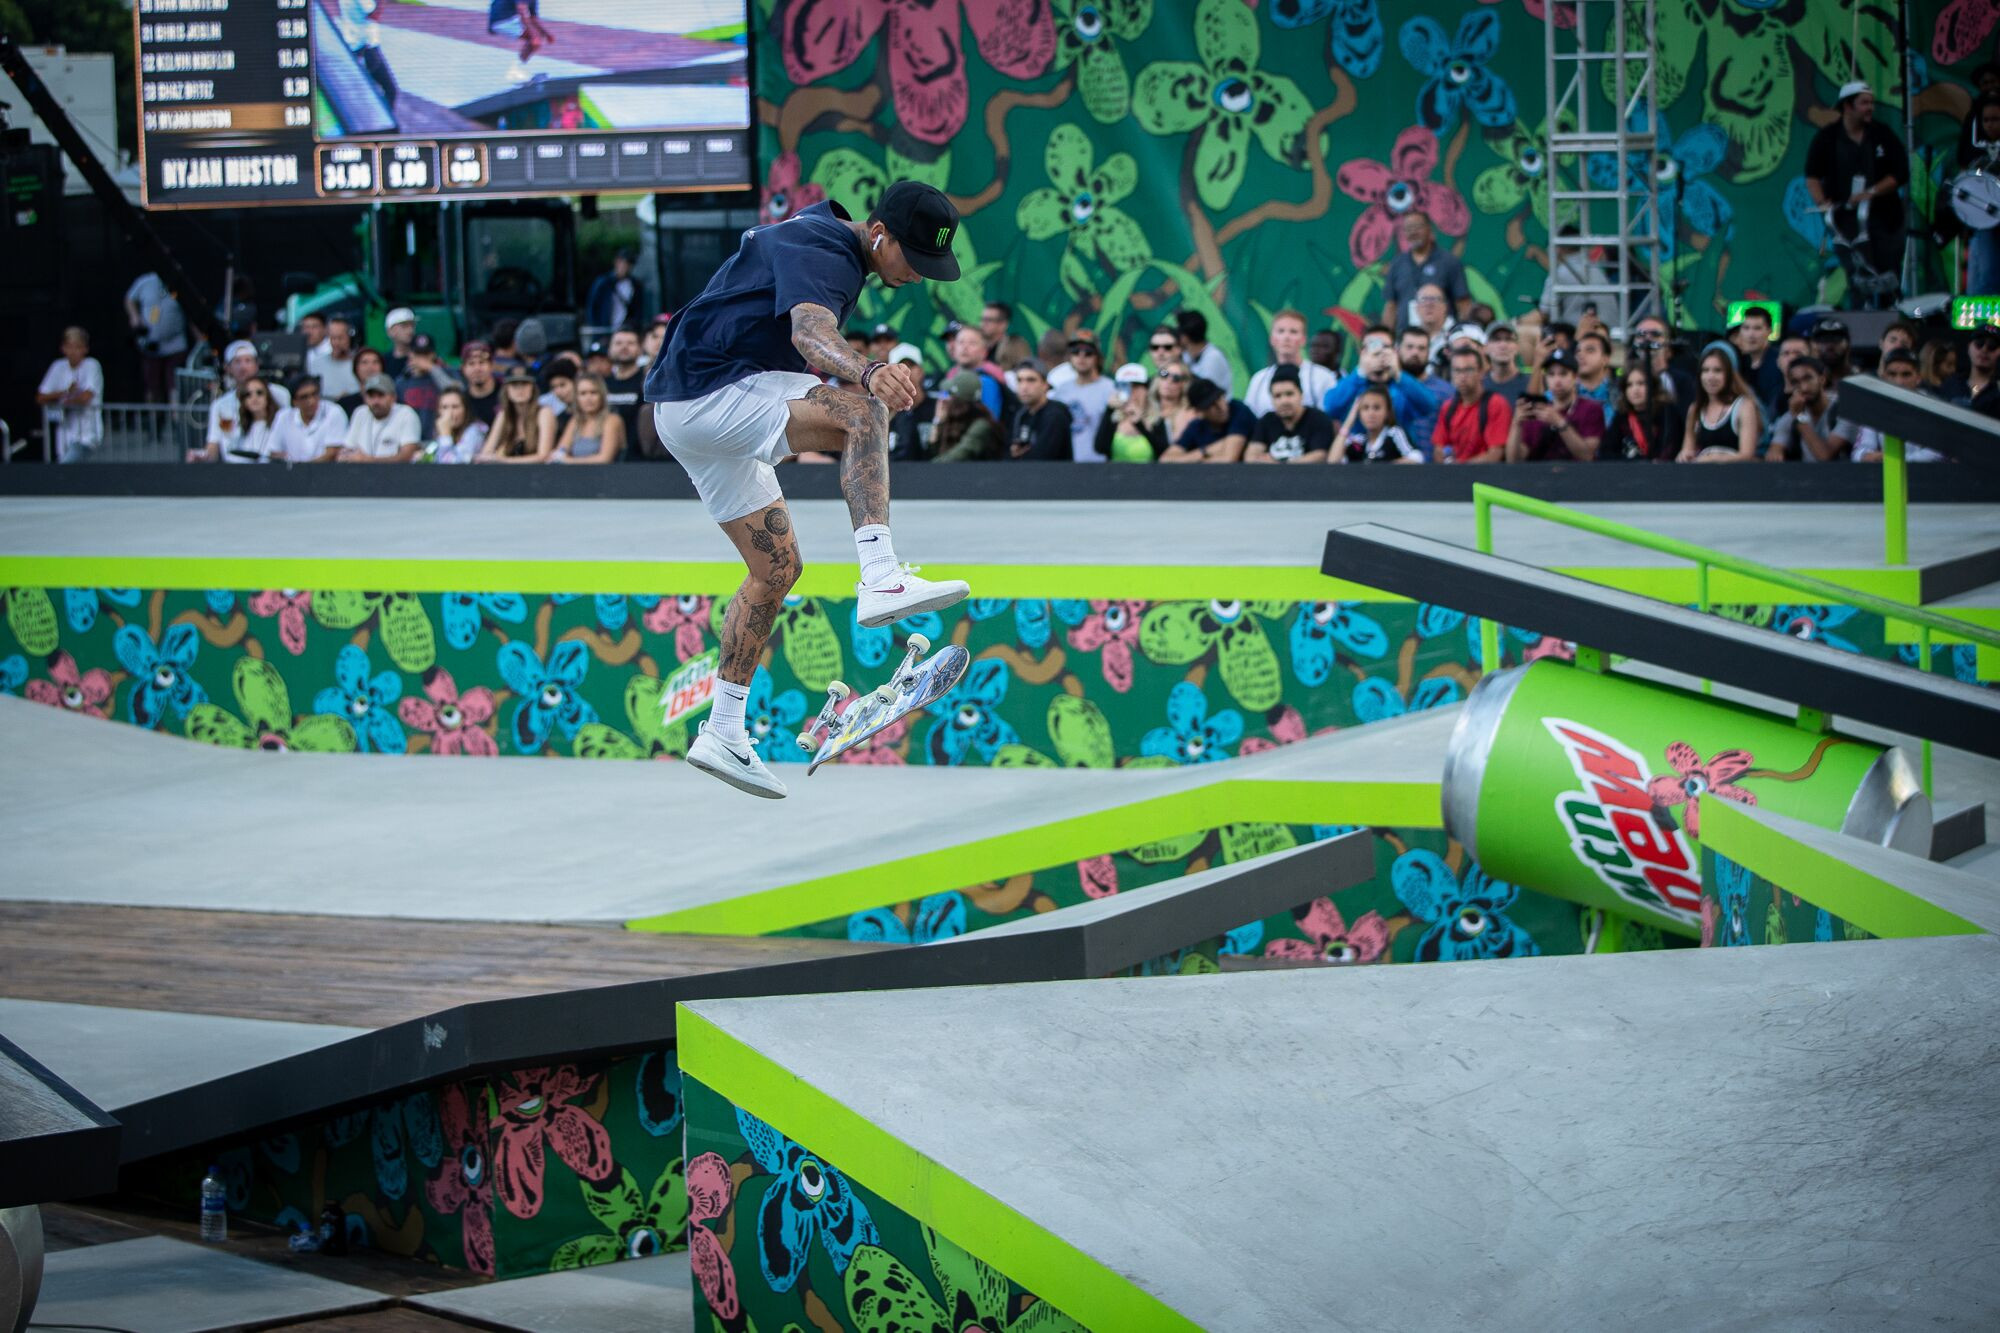 Tokyo 2020 qualification points up for grabs as World Skate and Street League Skateboarding unveil Tour